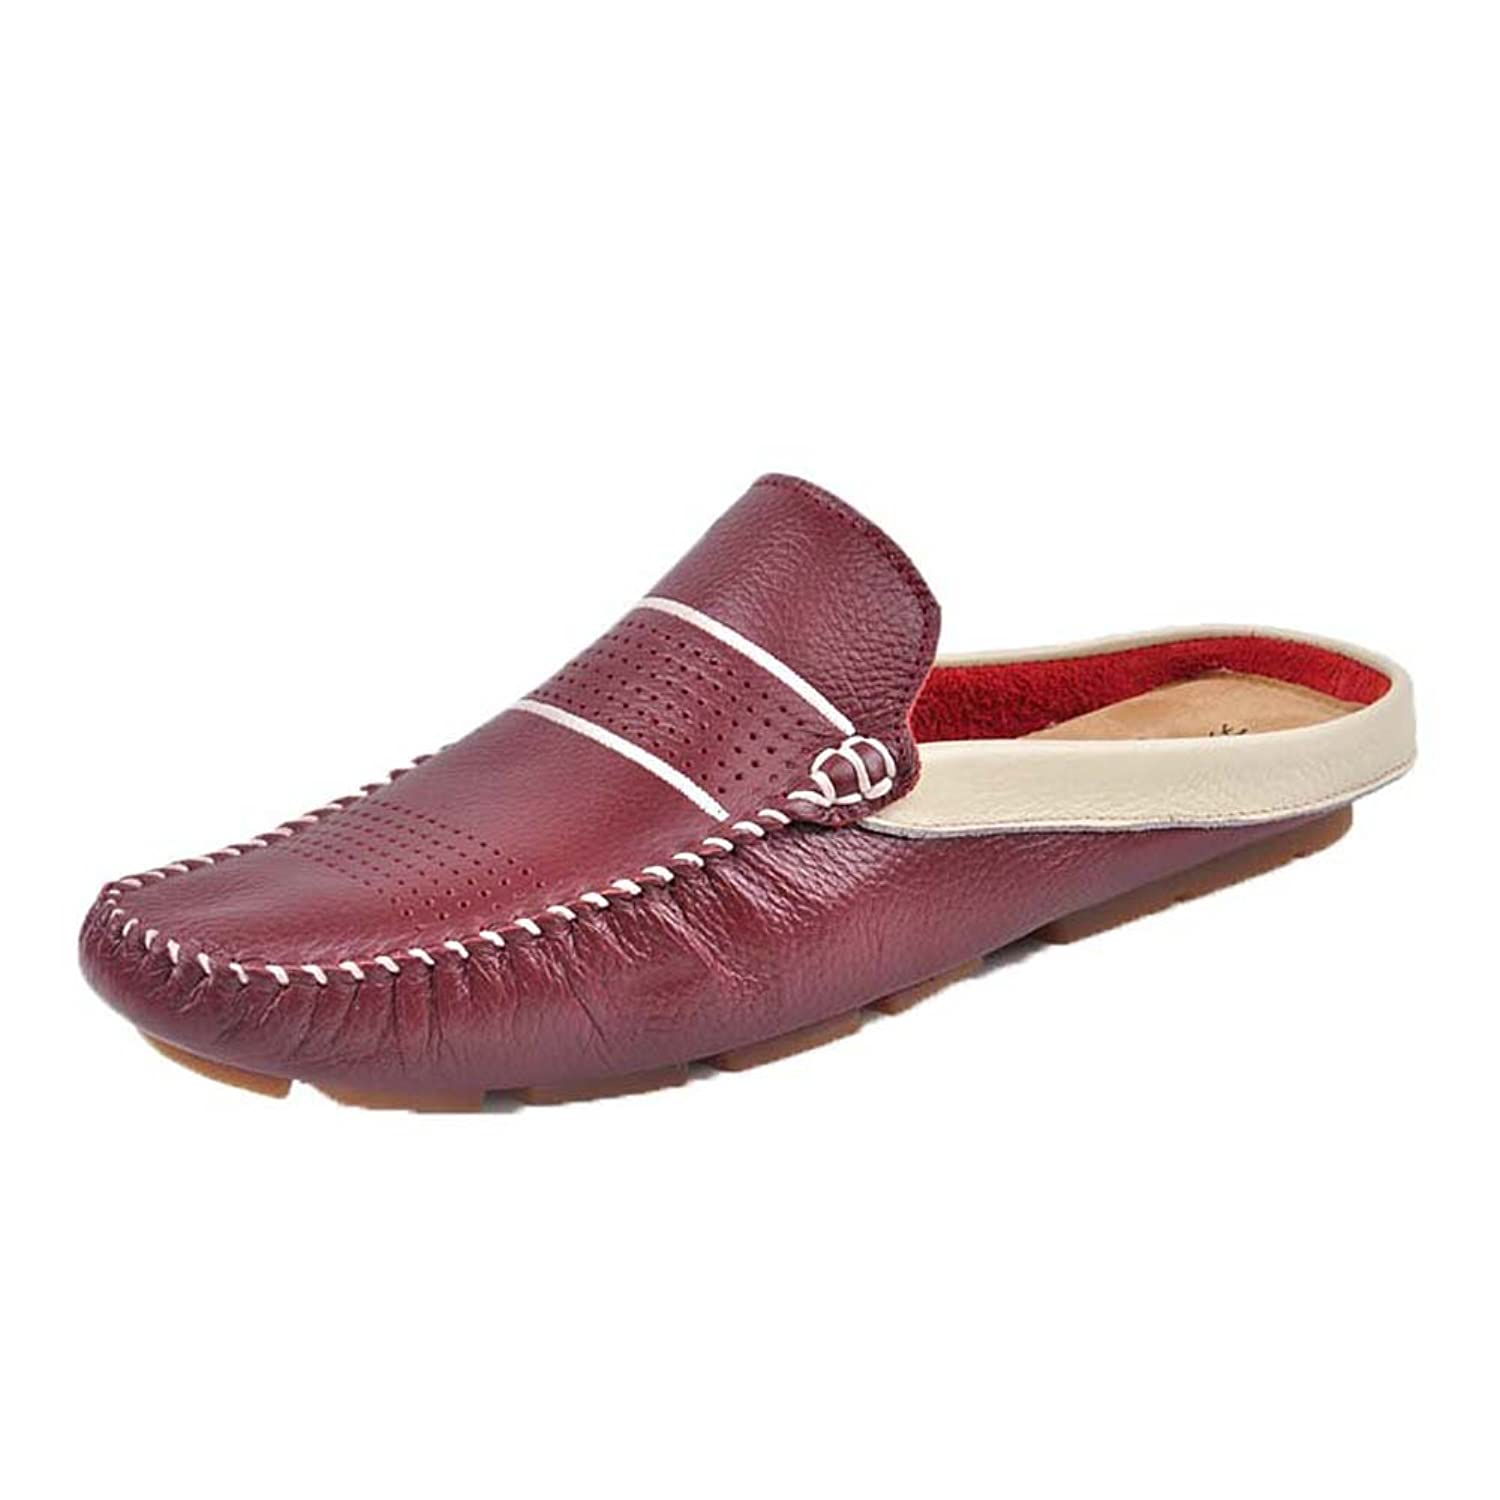 9d651cfbc6045 Santimon Men s Leather Backless Slippers Slip-on Loafters Shoes ...